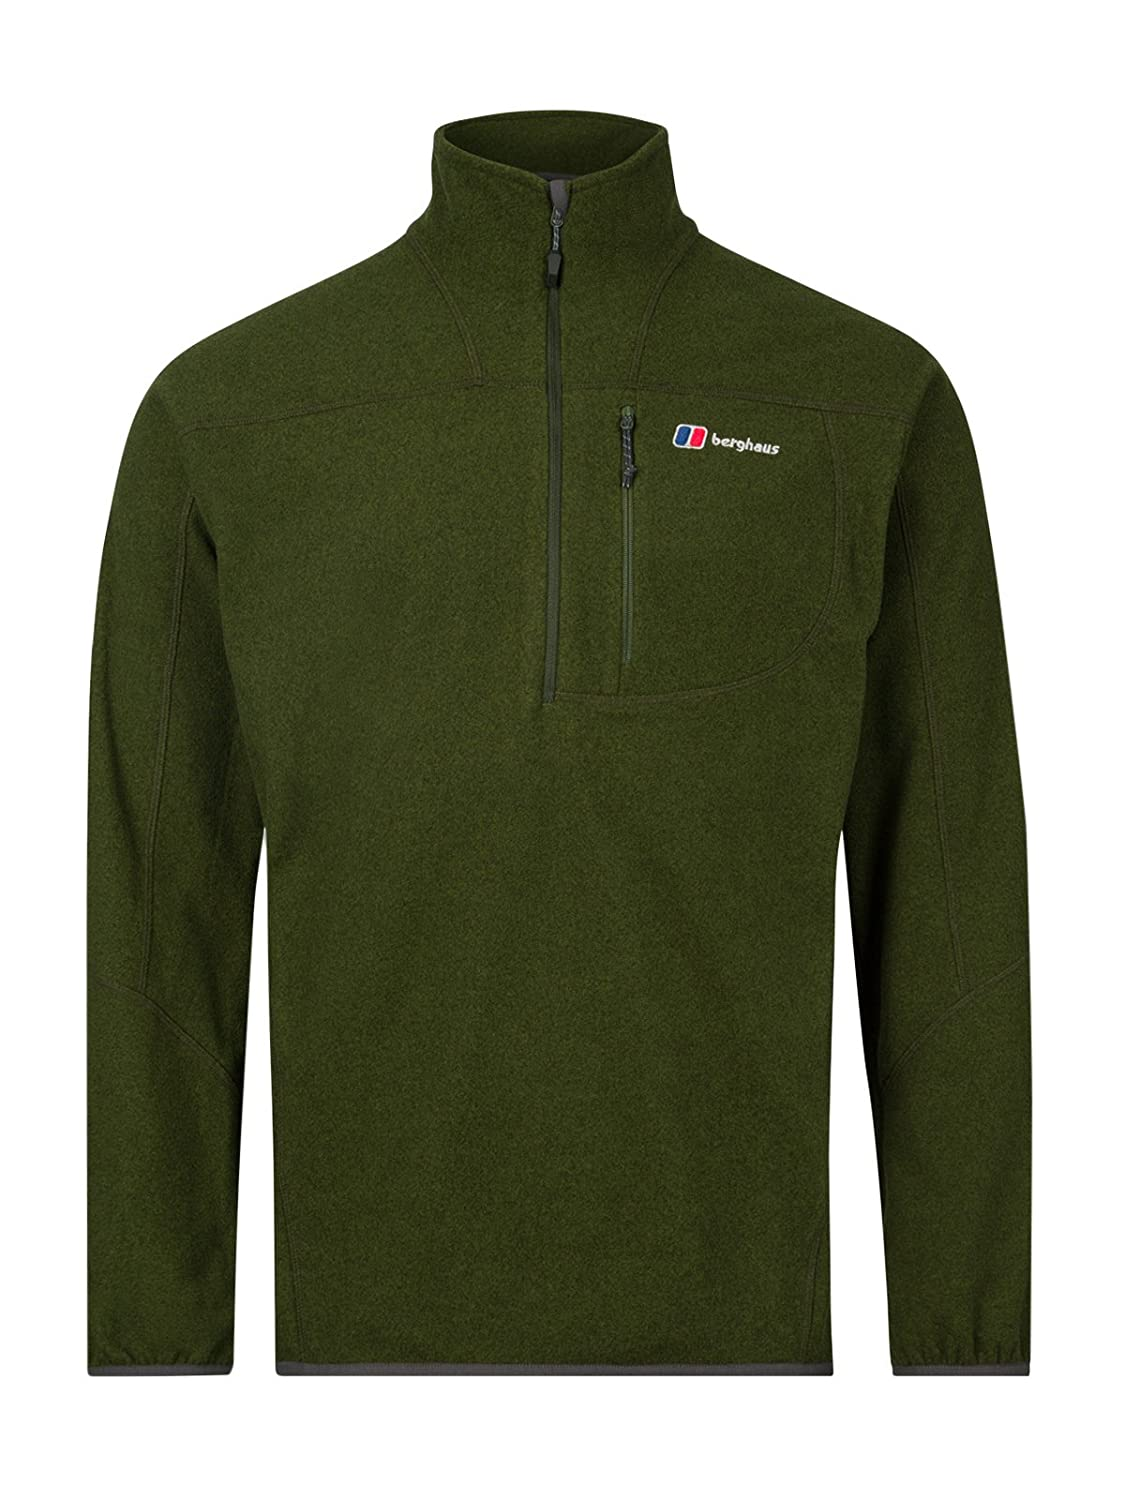 Berghaus Herren Spectrum Micro 2.0 Half Zip Fleece Top